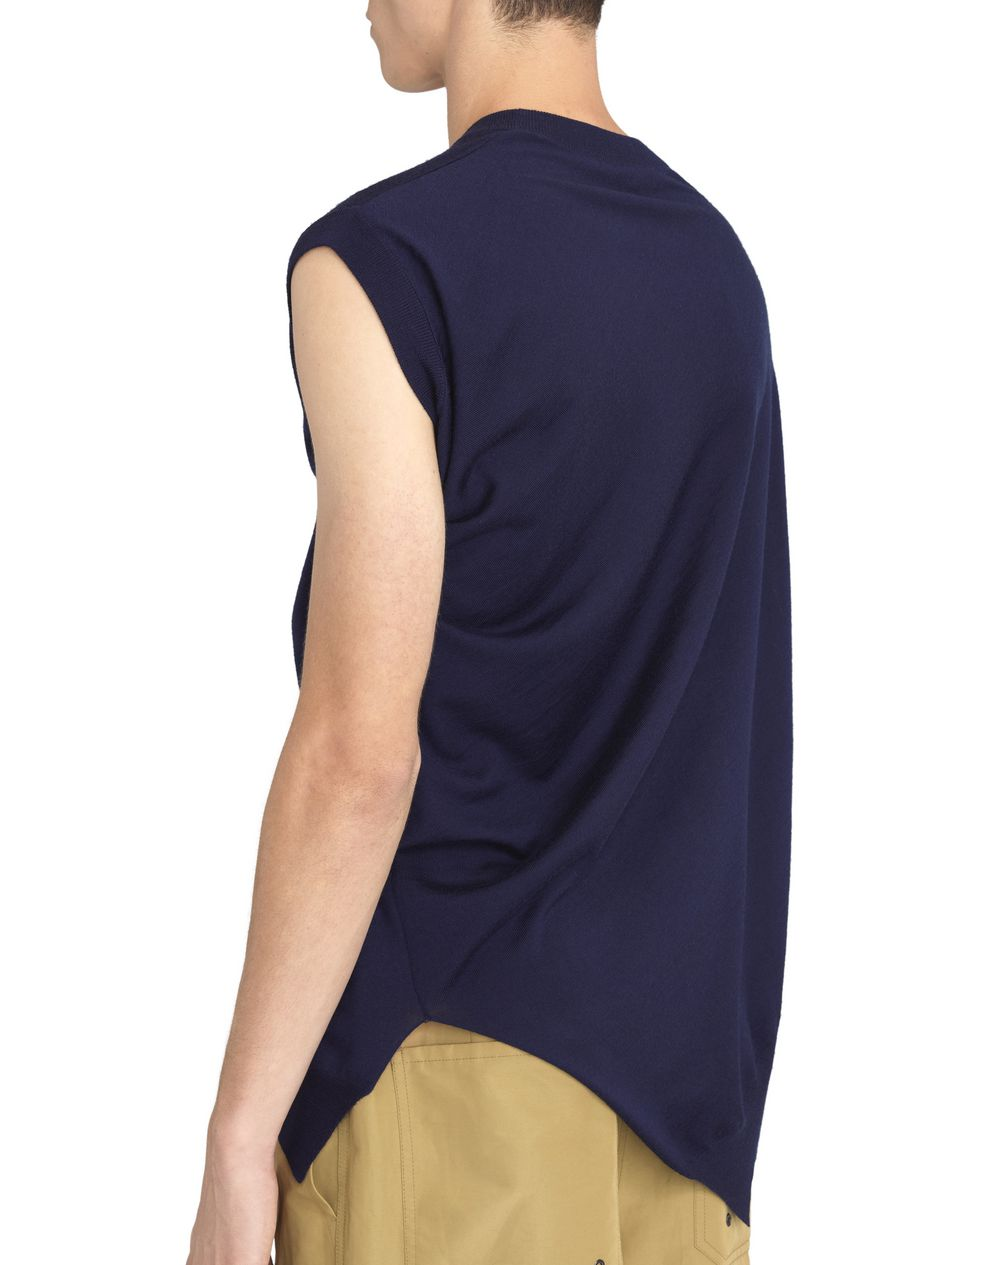 NAVY BLUE ASYMMETRICAL TWISTED SWEATER - Lanvin